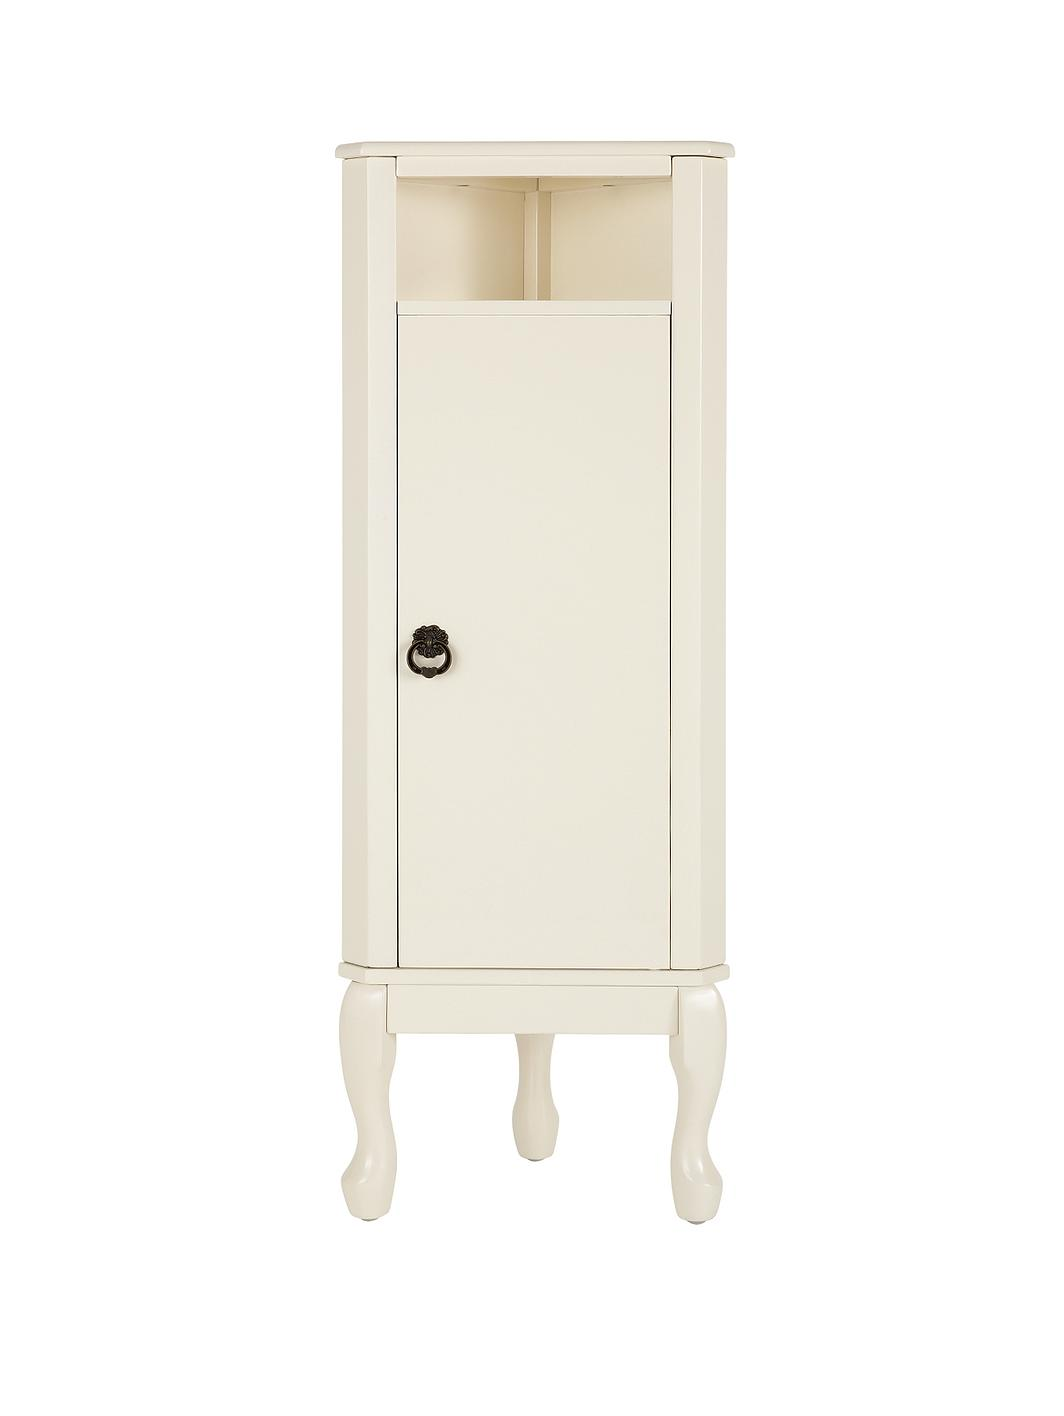 Elysee corner bathroom floor cabinet unit for Bathroom floor cabinet